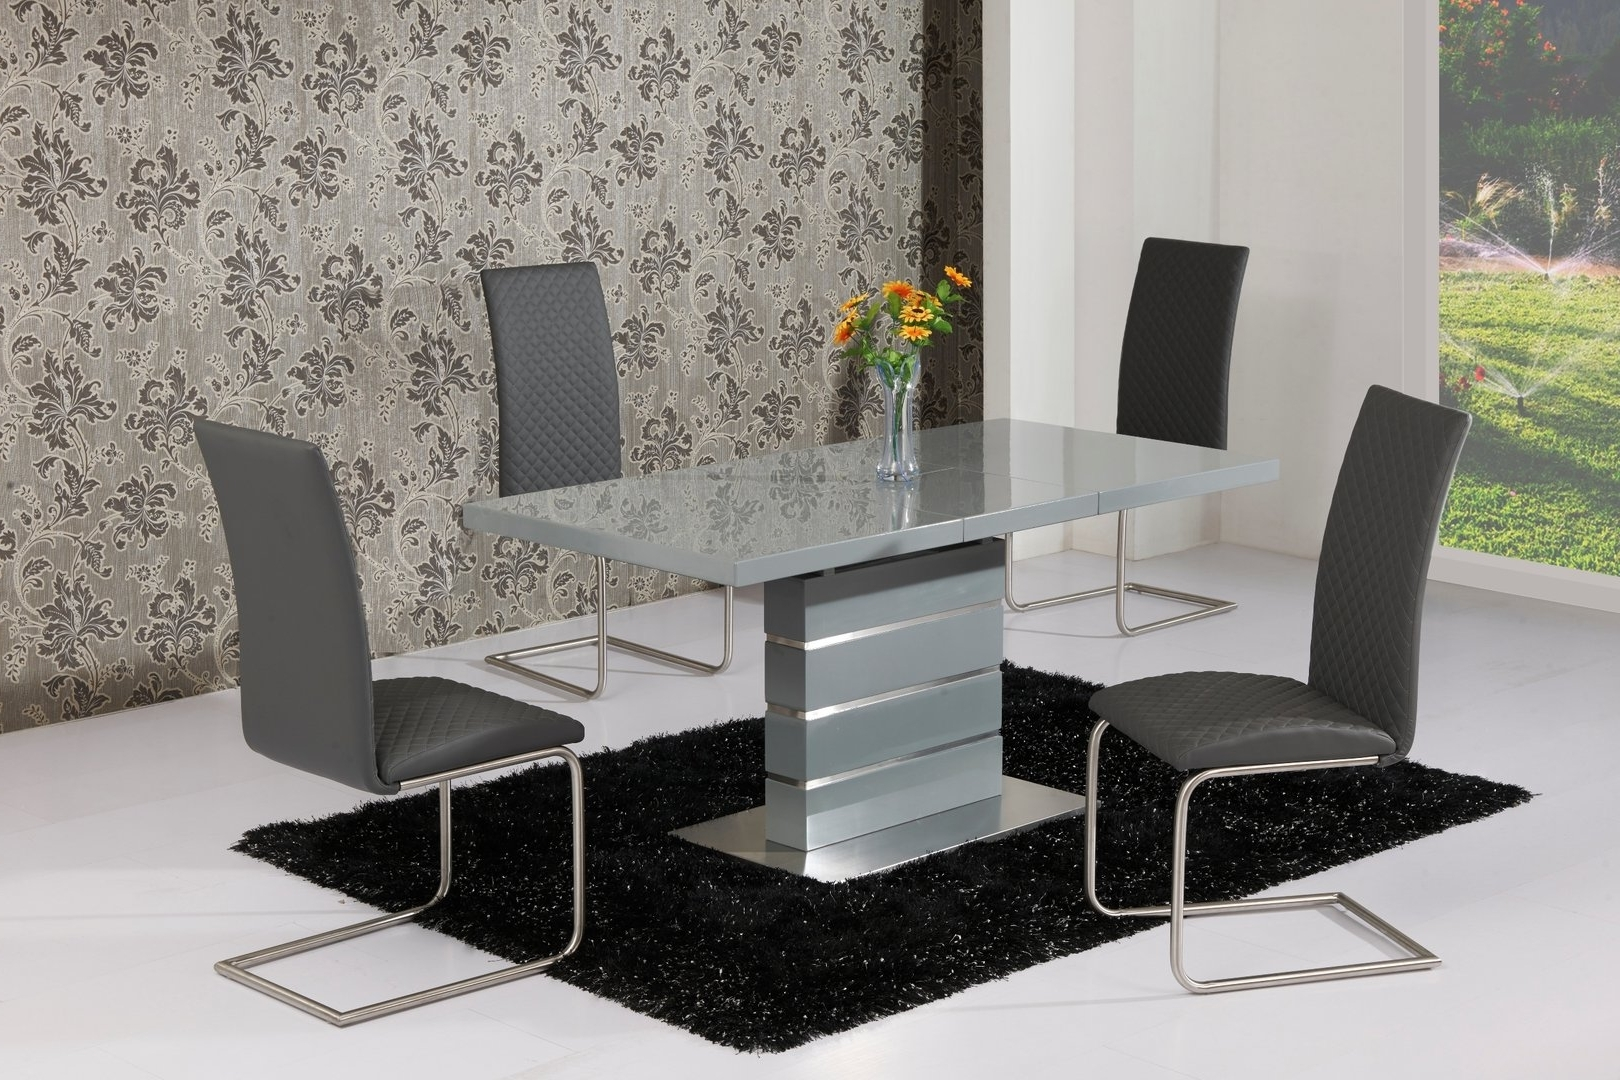 Black Gloss Dining Sets Inside Well Known Extending Grey High Gloss Dining Table And 4 Grey Chairs (View 5 of 25)